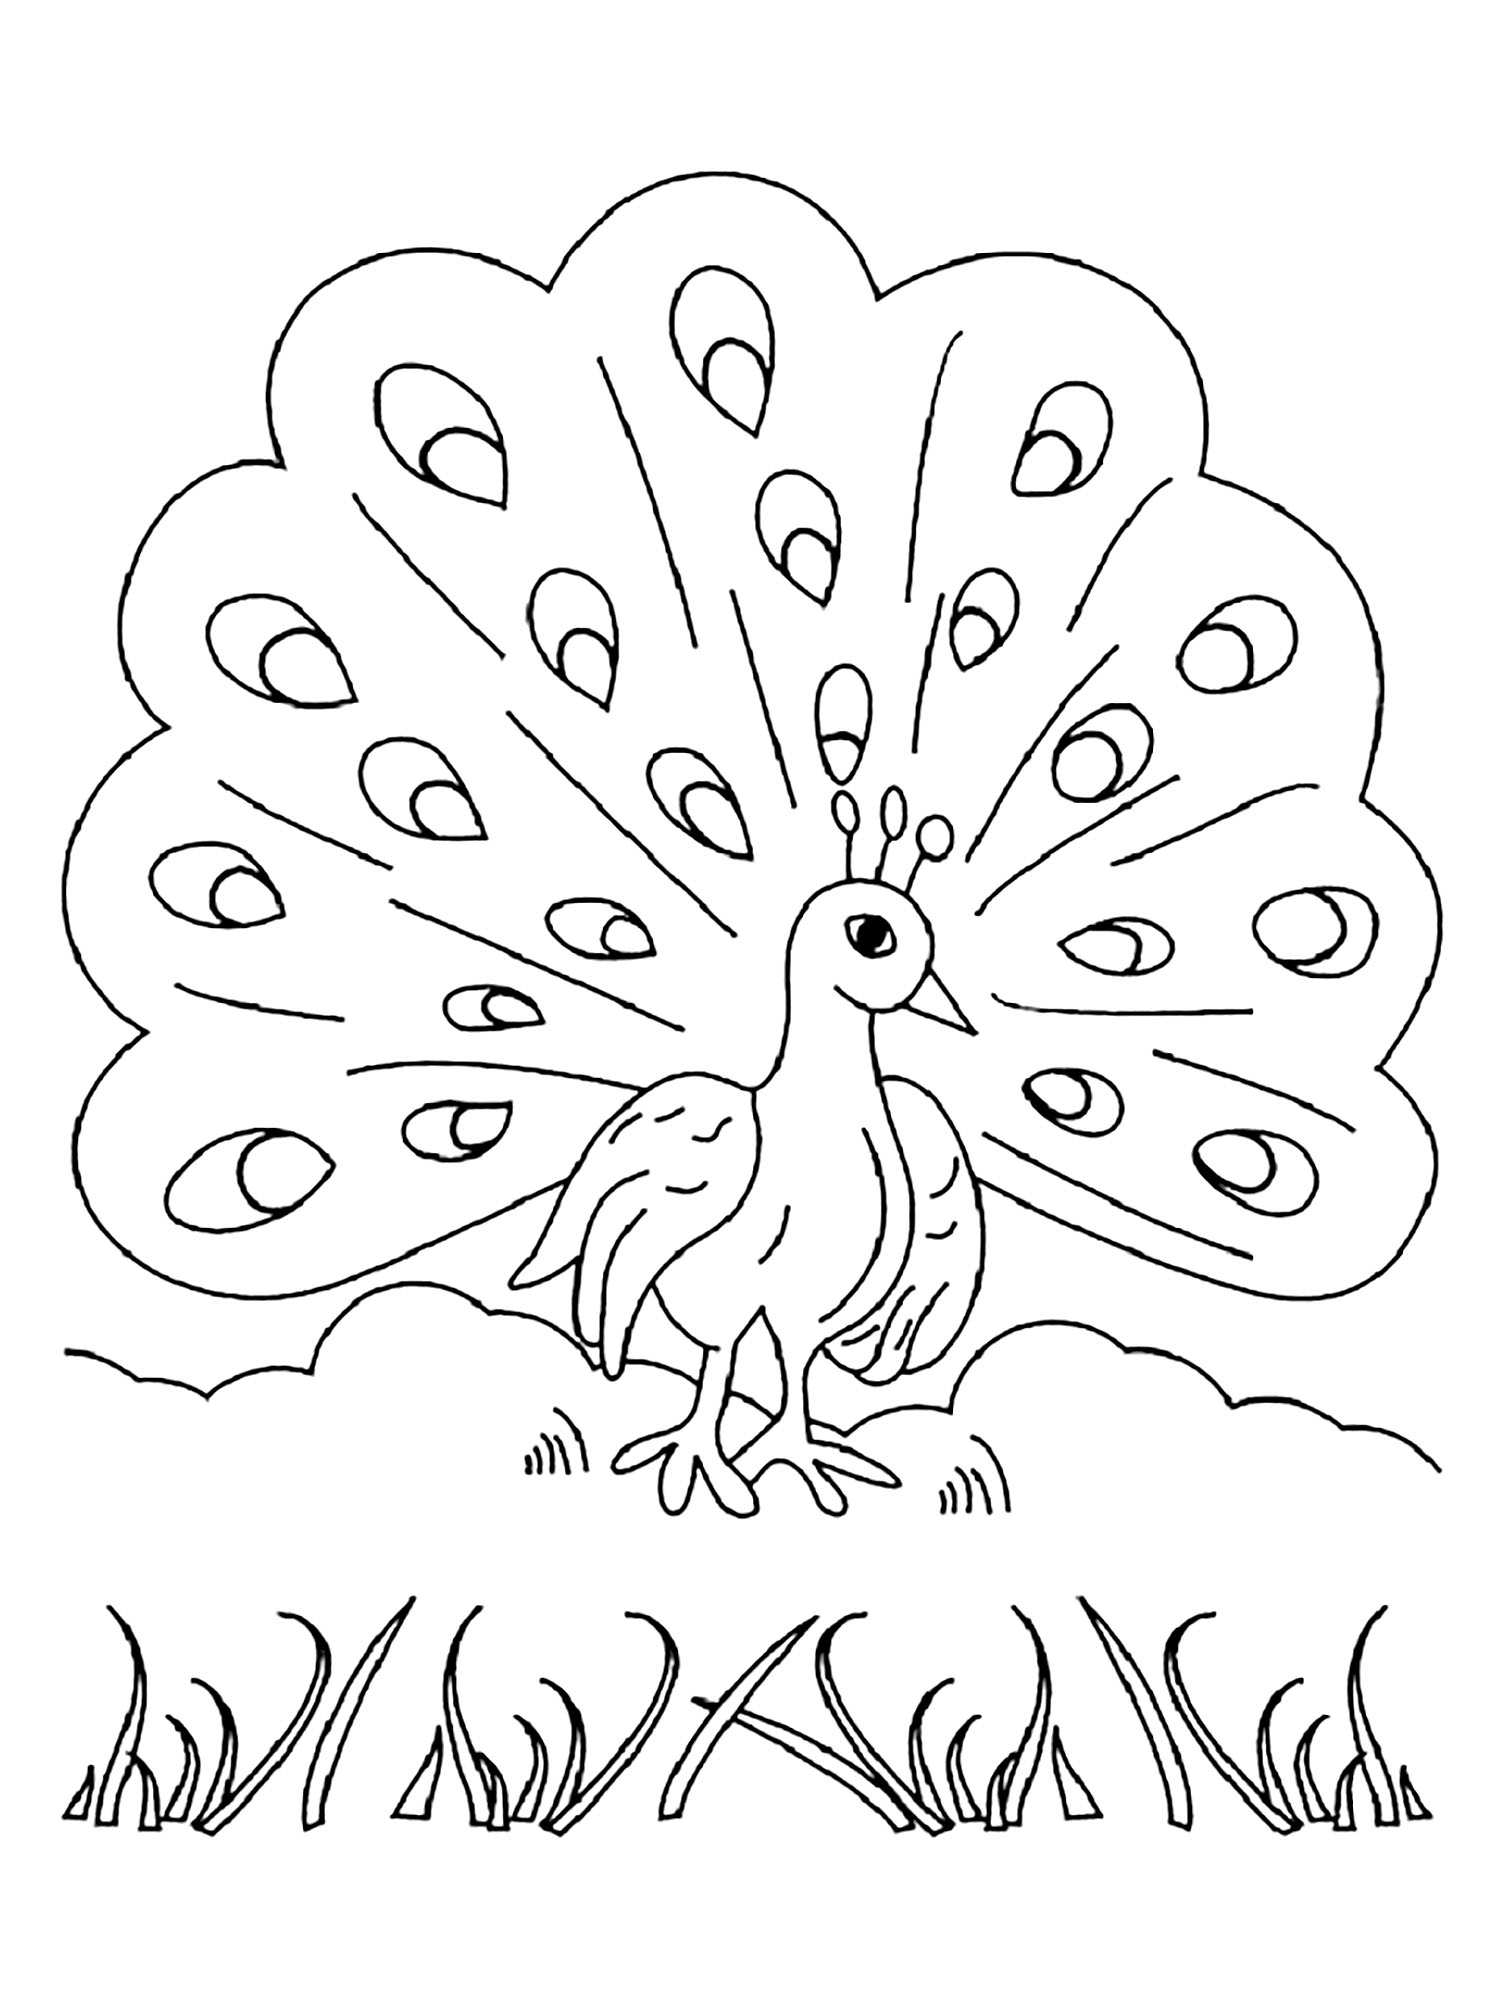 Funny Peacocks coloring page for children